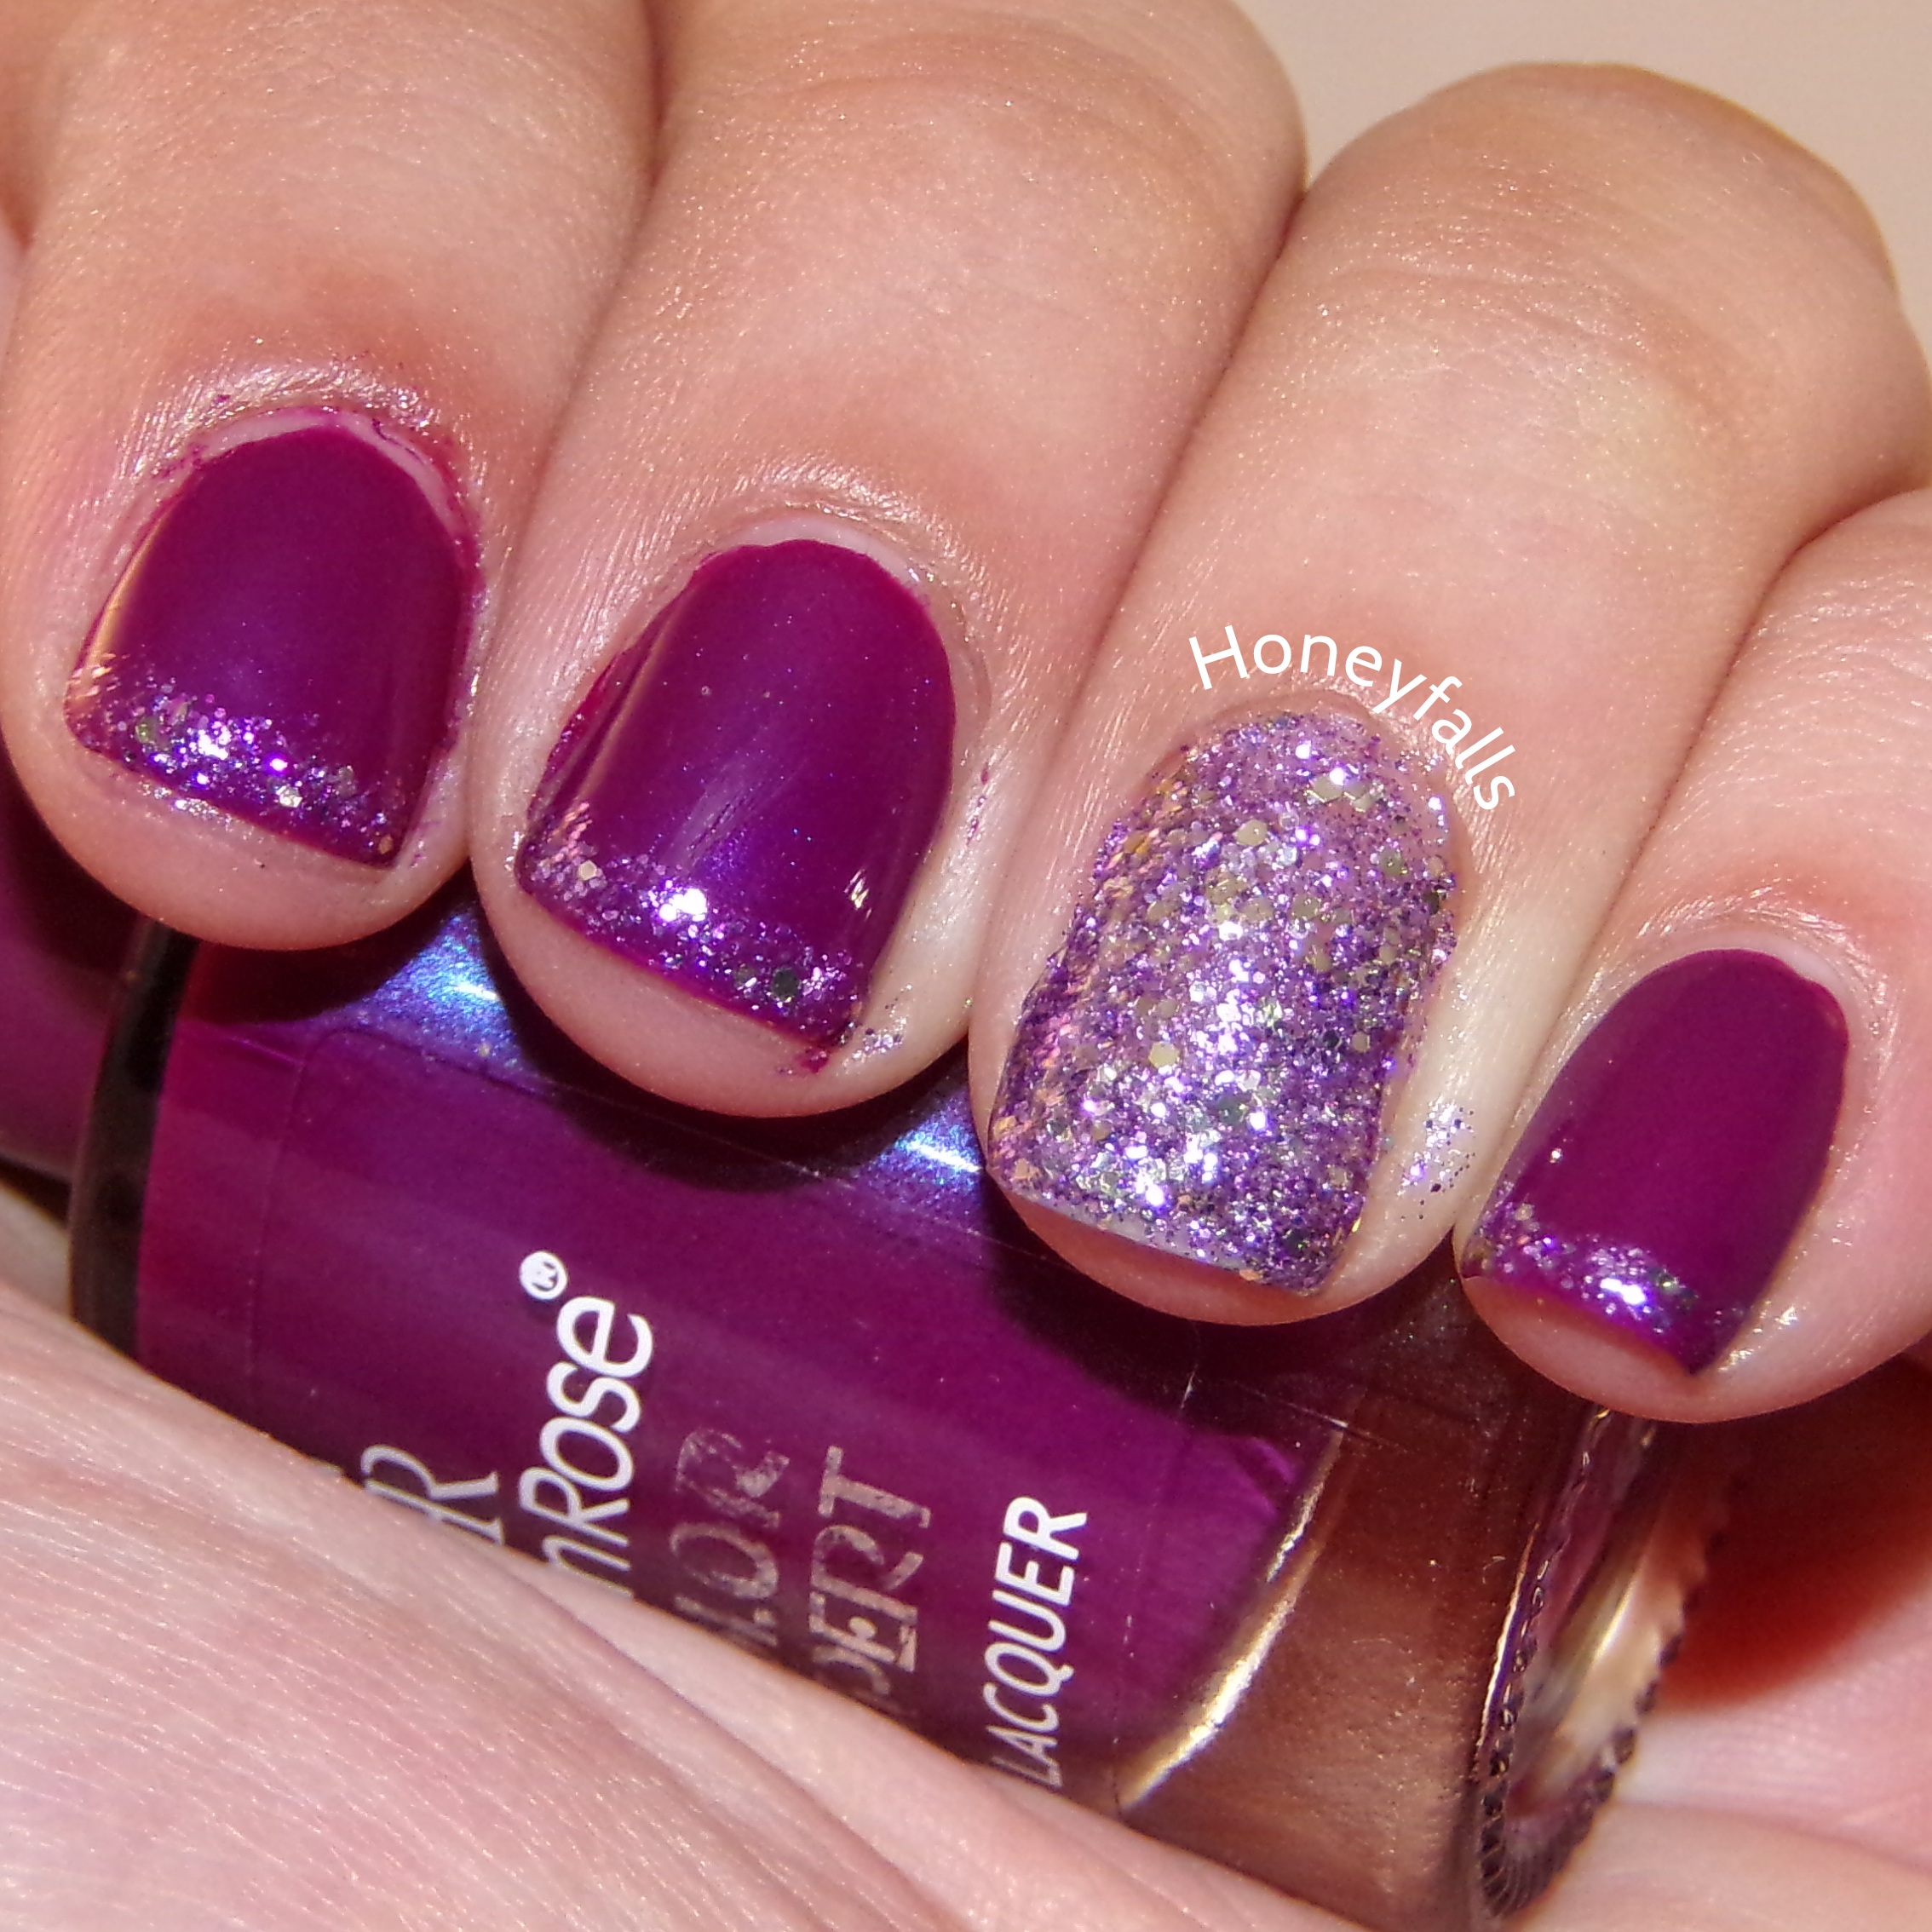 Im Wearing Two Polishes By Golden Rose Here Color Expert 28 They Only Have Numbers No Names As My Main Mani And Jolly Jewels